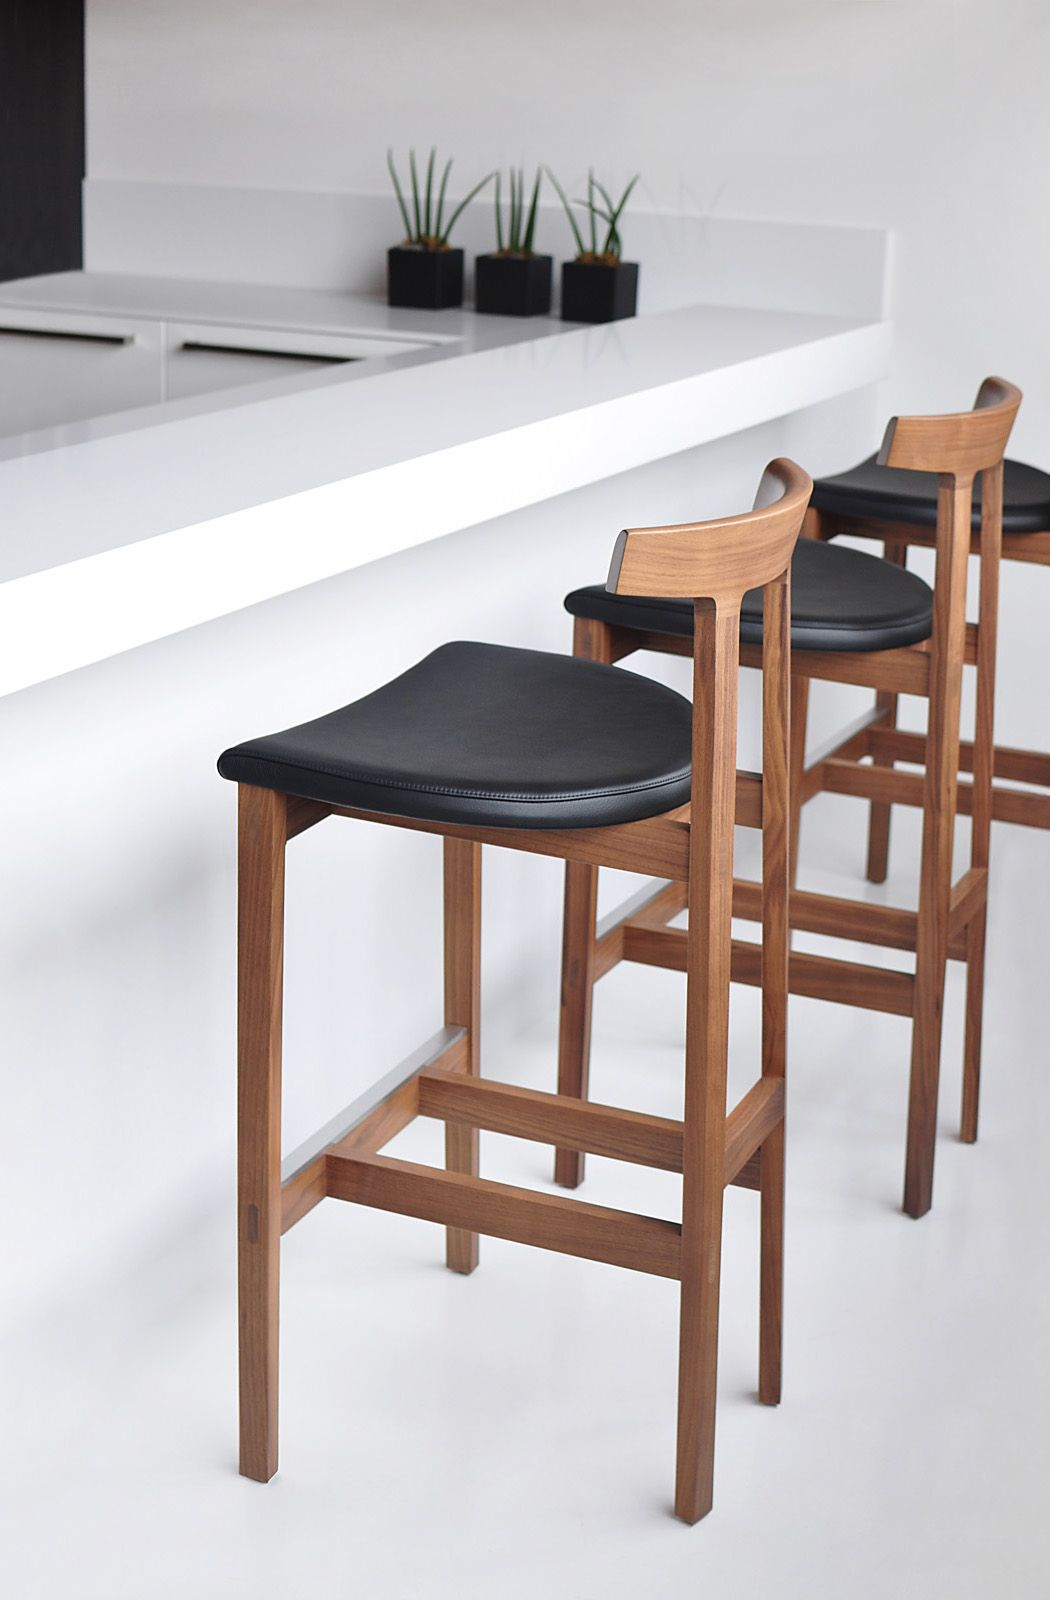 tall furniture that chairs marvelous stool kitchen bar metal top wonderful height counter inch splendid stools look